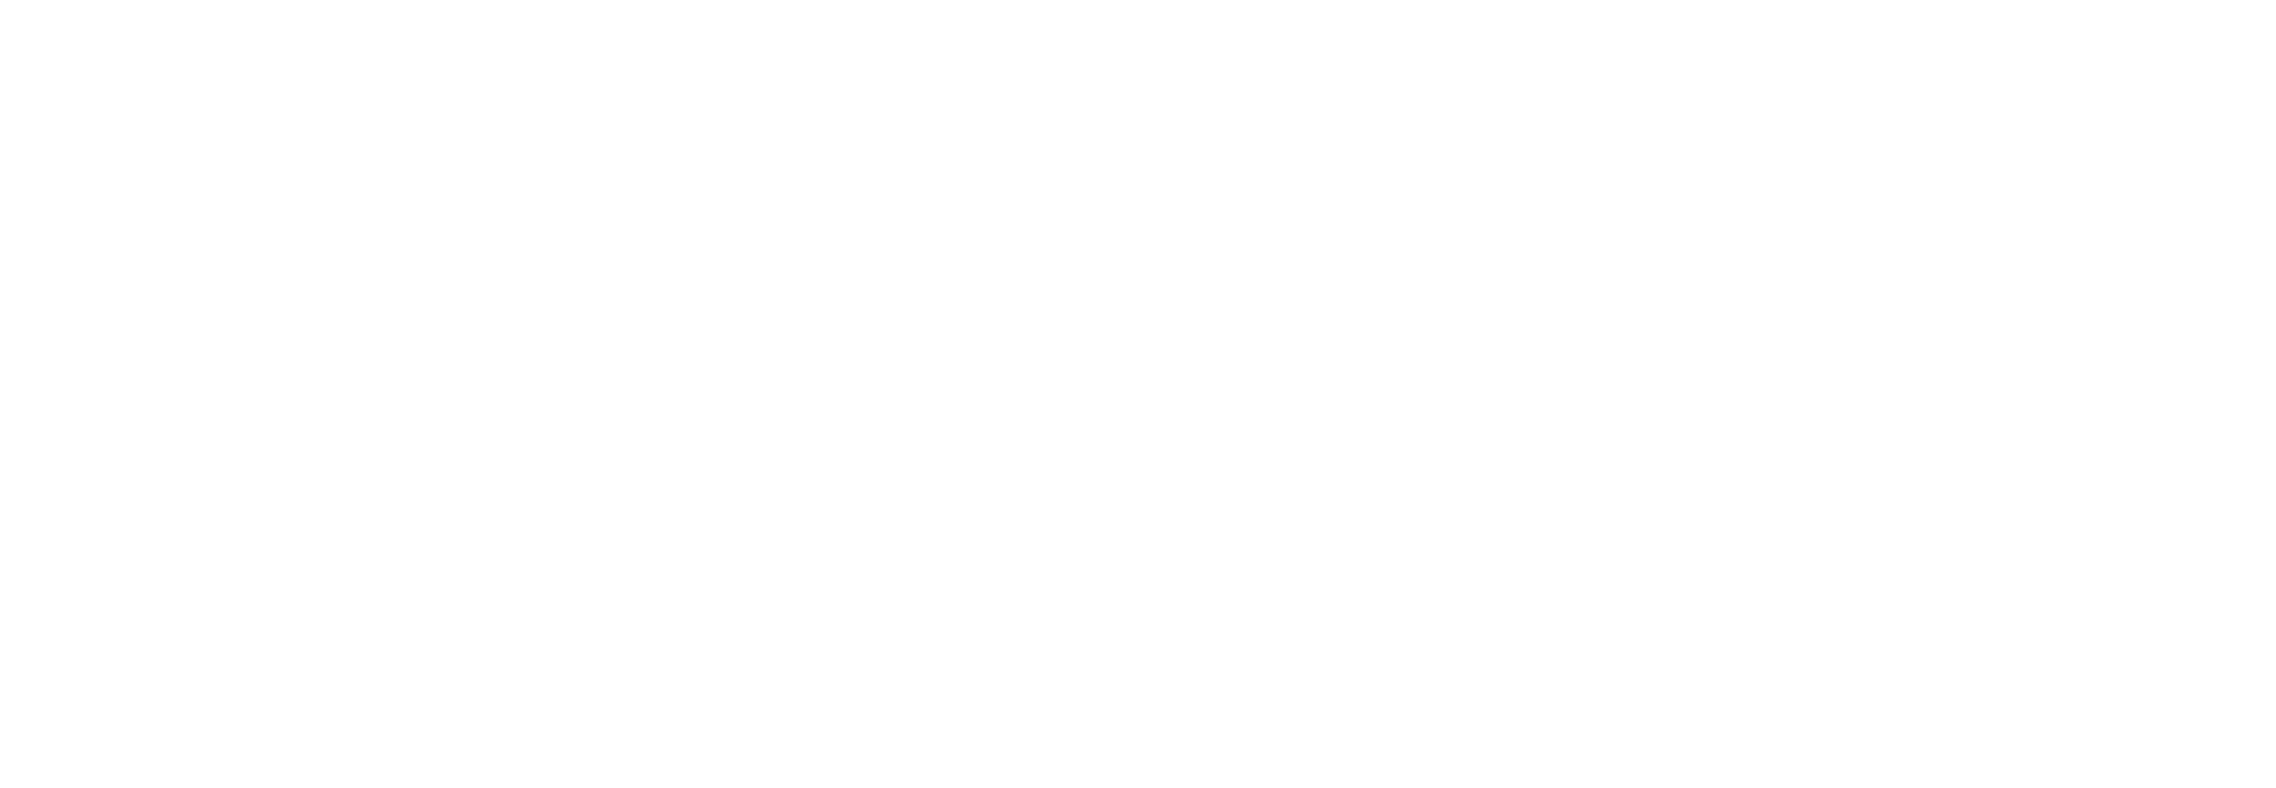 911-at-ease-logo